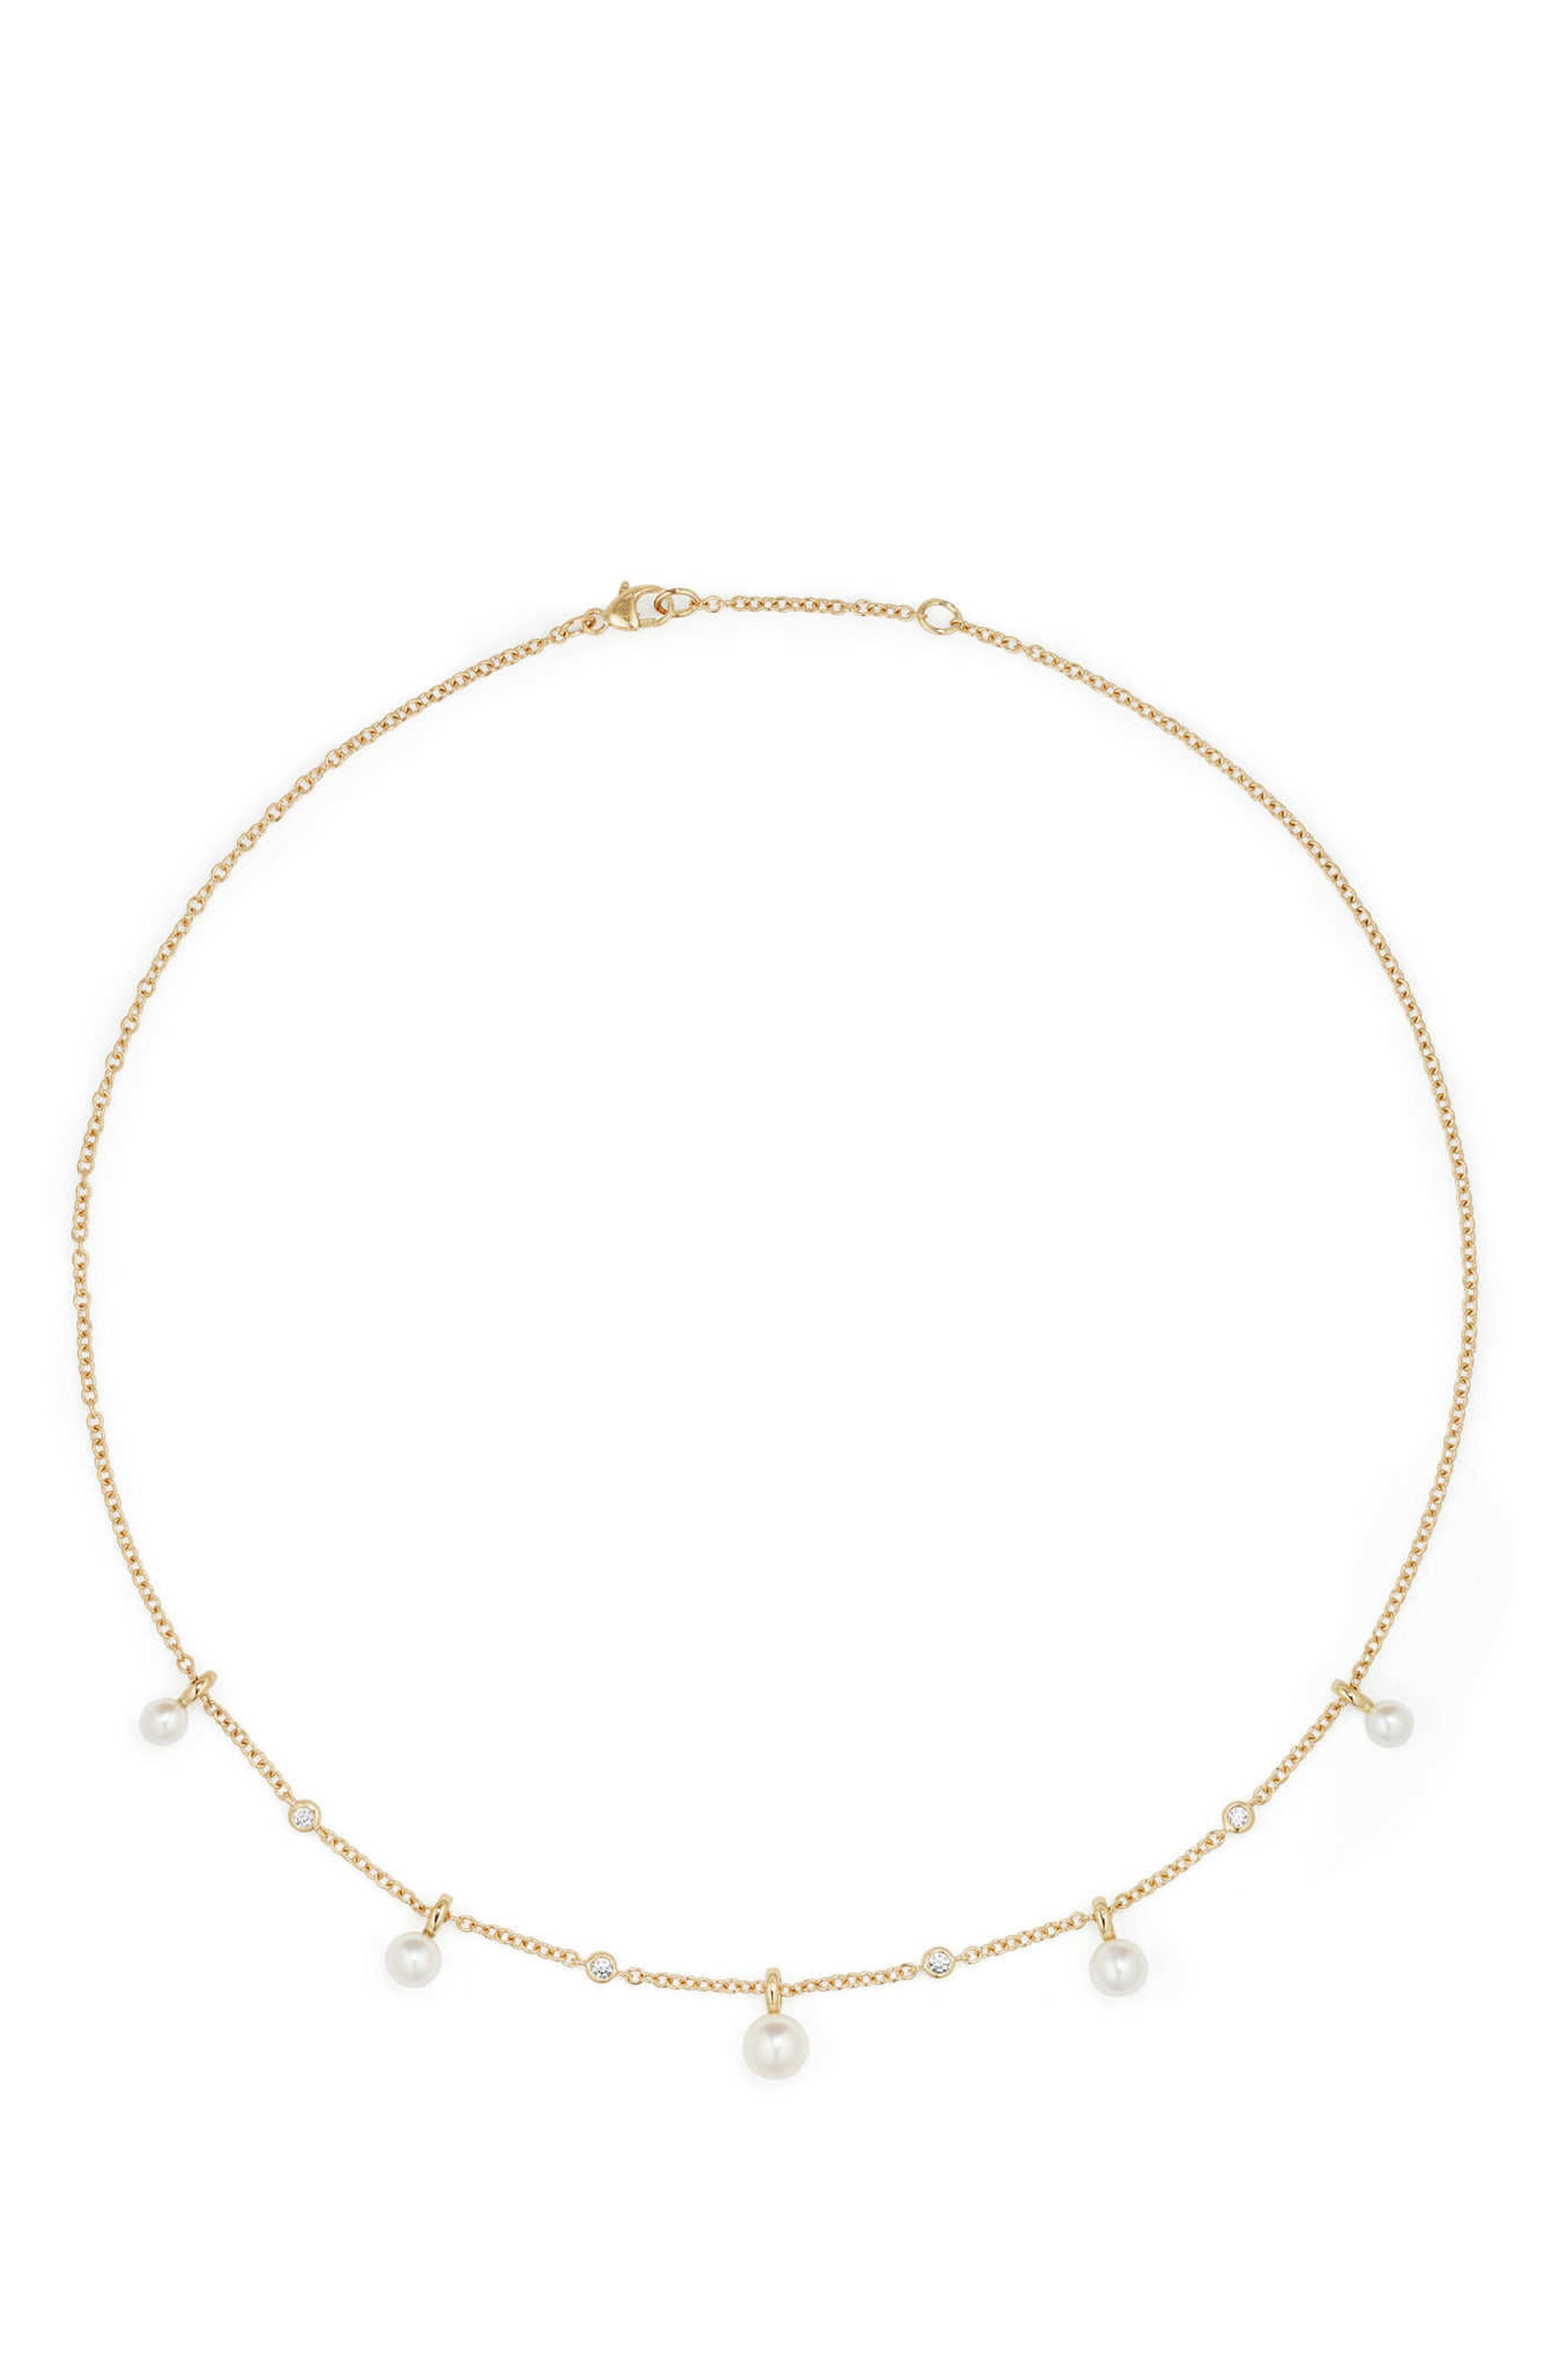 Petite Perle Pearl & Diamond Fringe Necklace in 18k Gold,                         Main,                         color, Gold/ Diamond/ Pearl